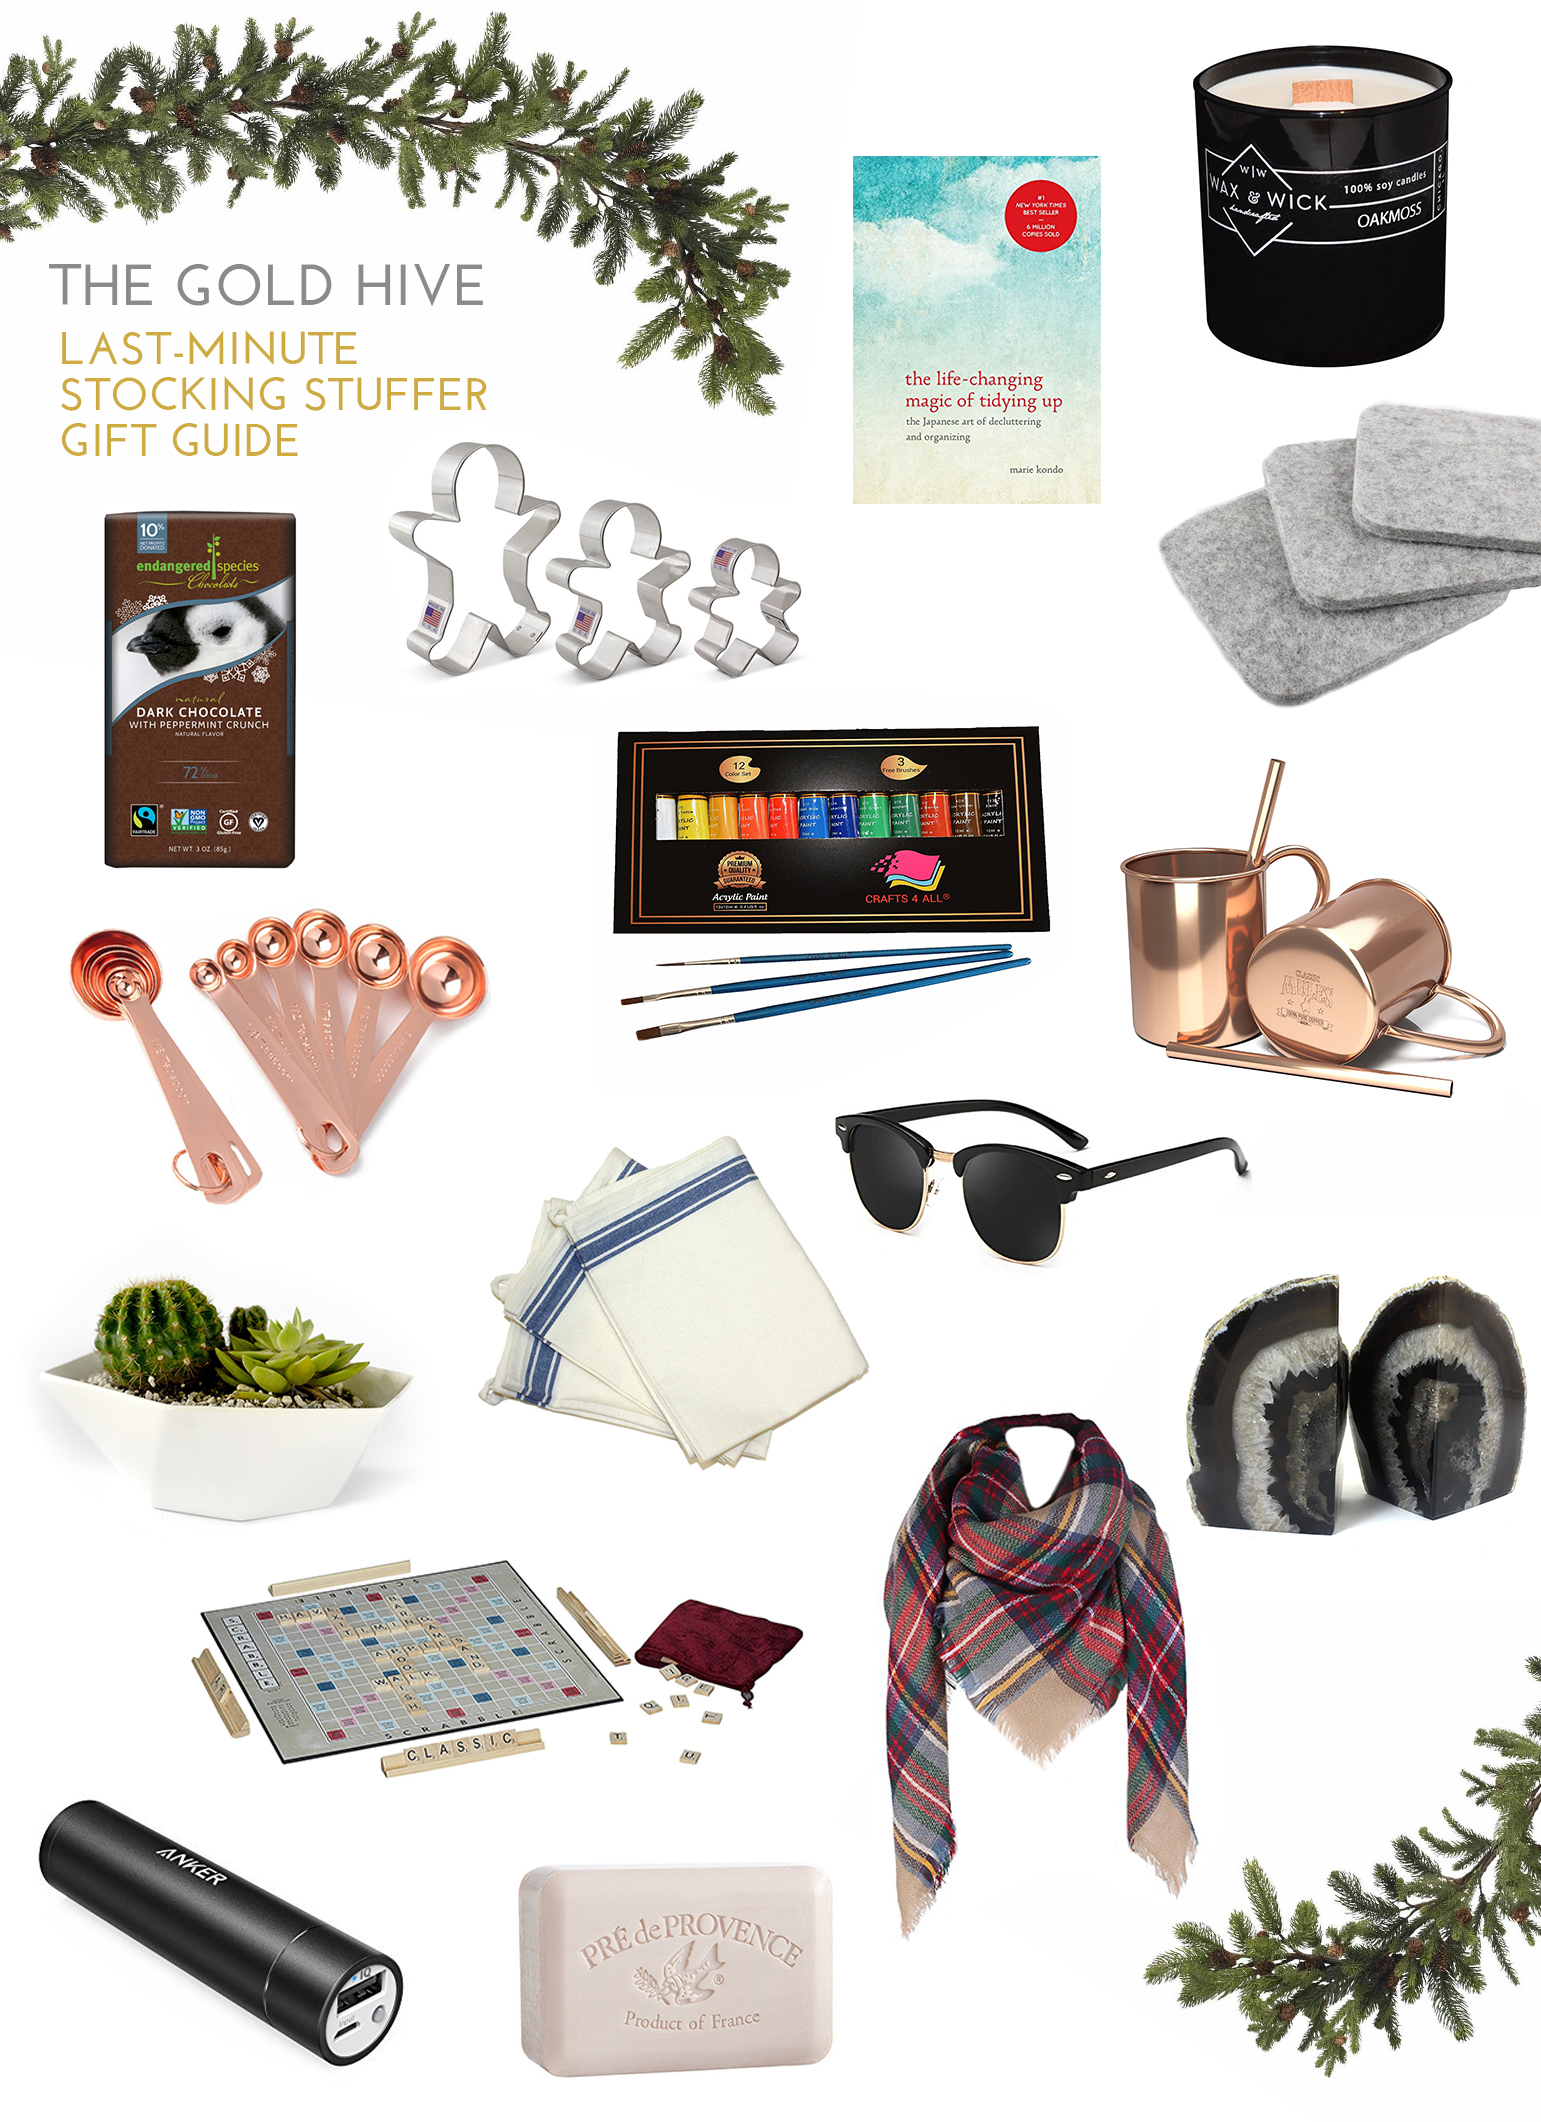 the gold hive stocking stuffer gift guide